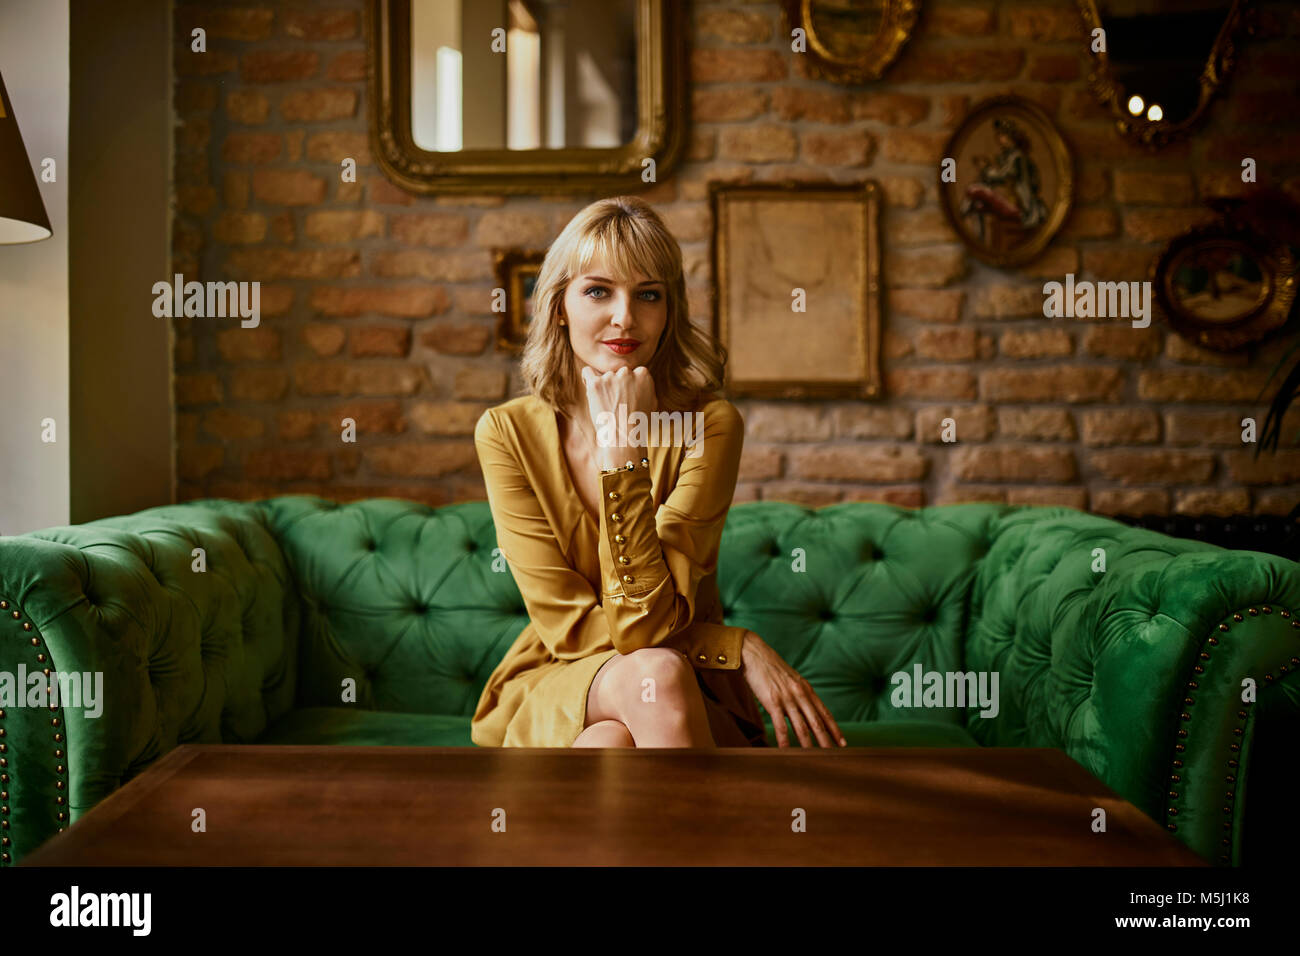 Portrait of elegant woman sitting on a couch - Stock Image